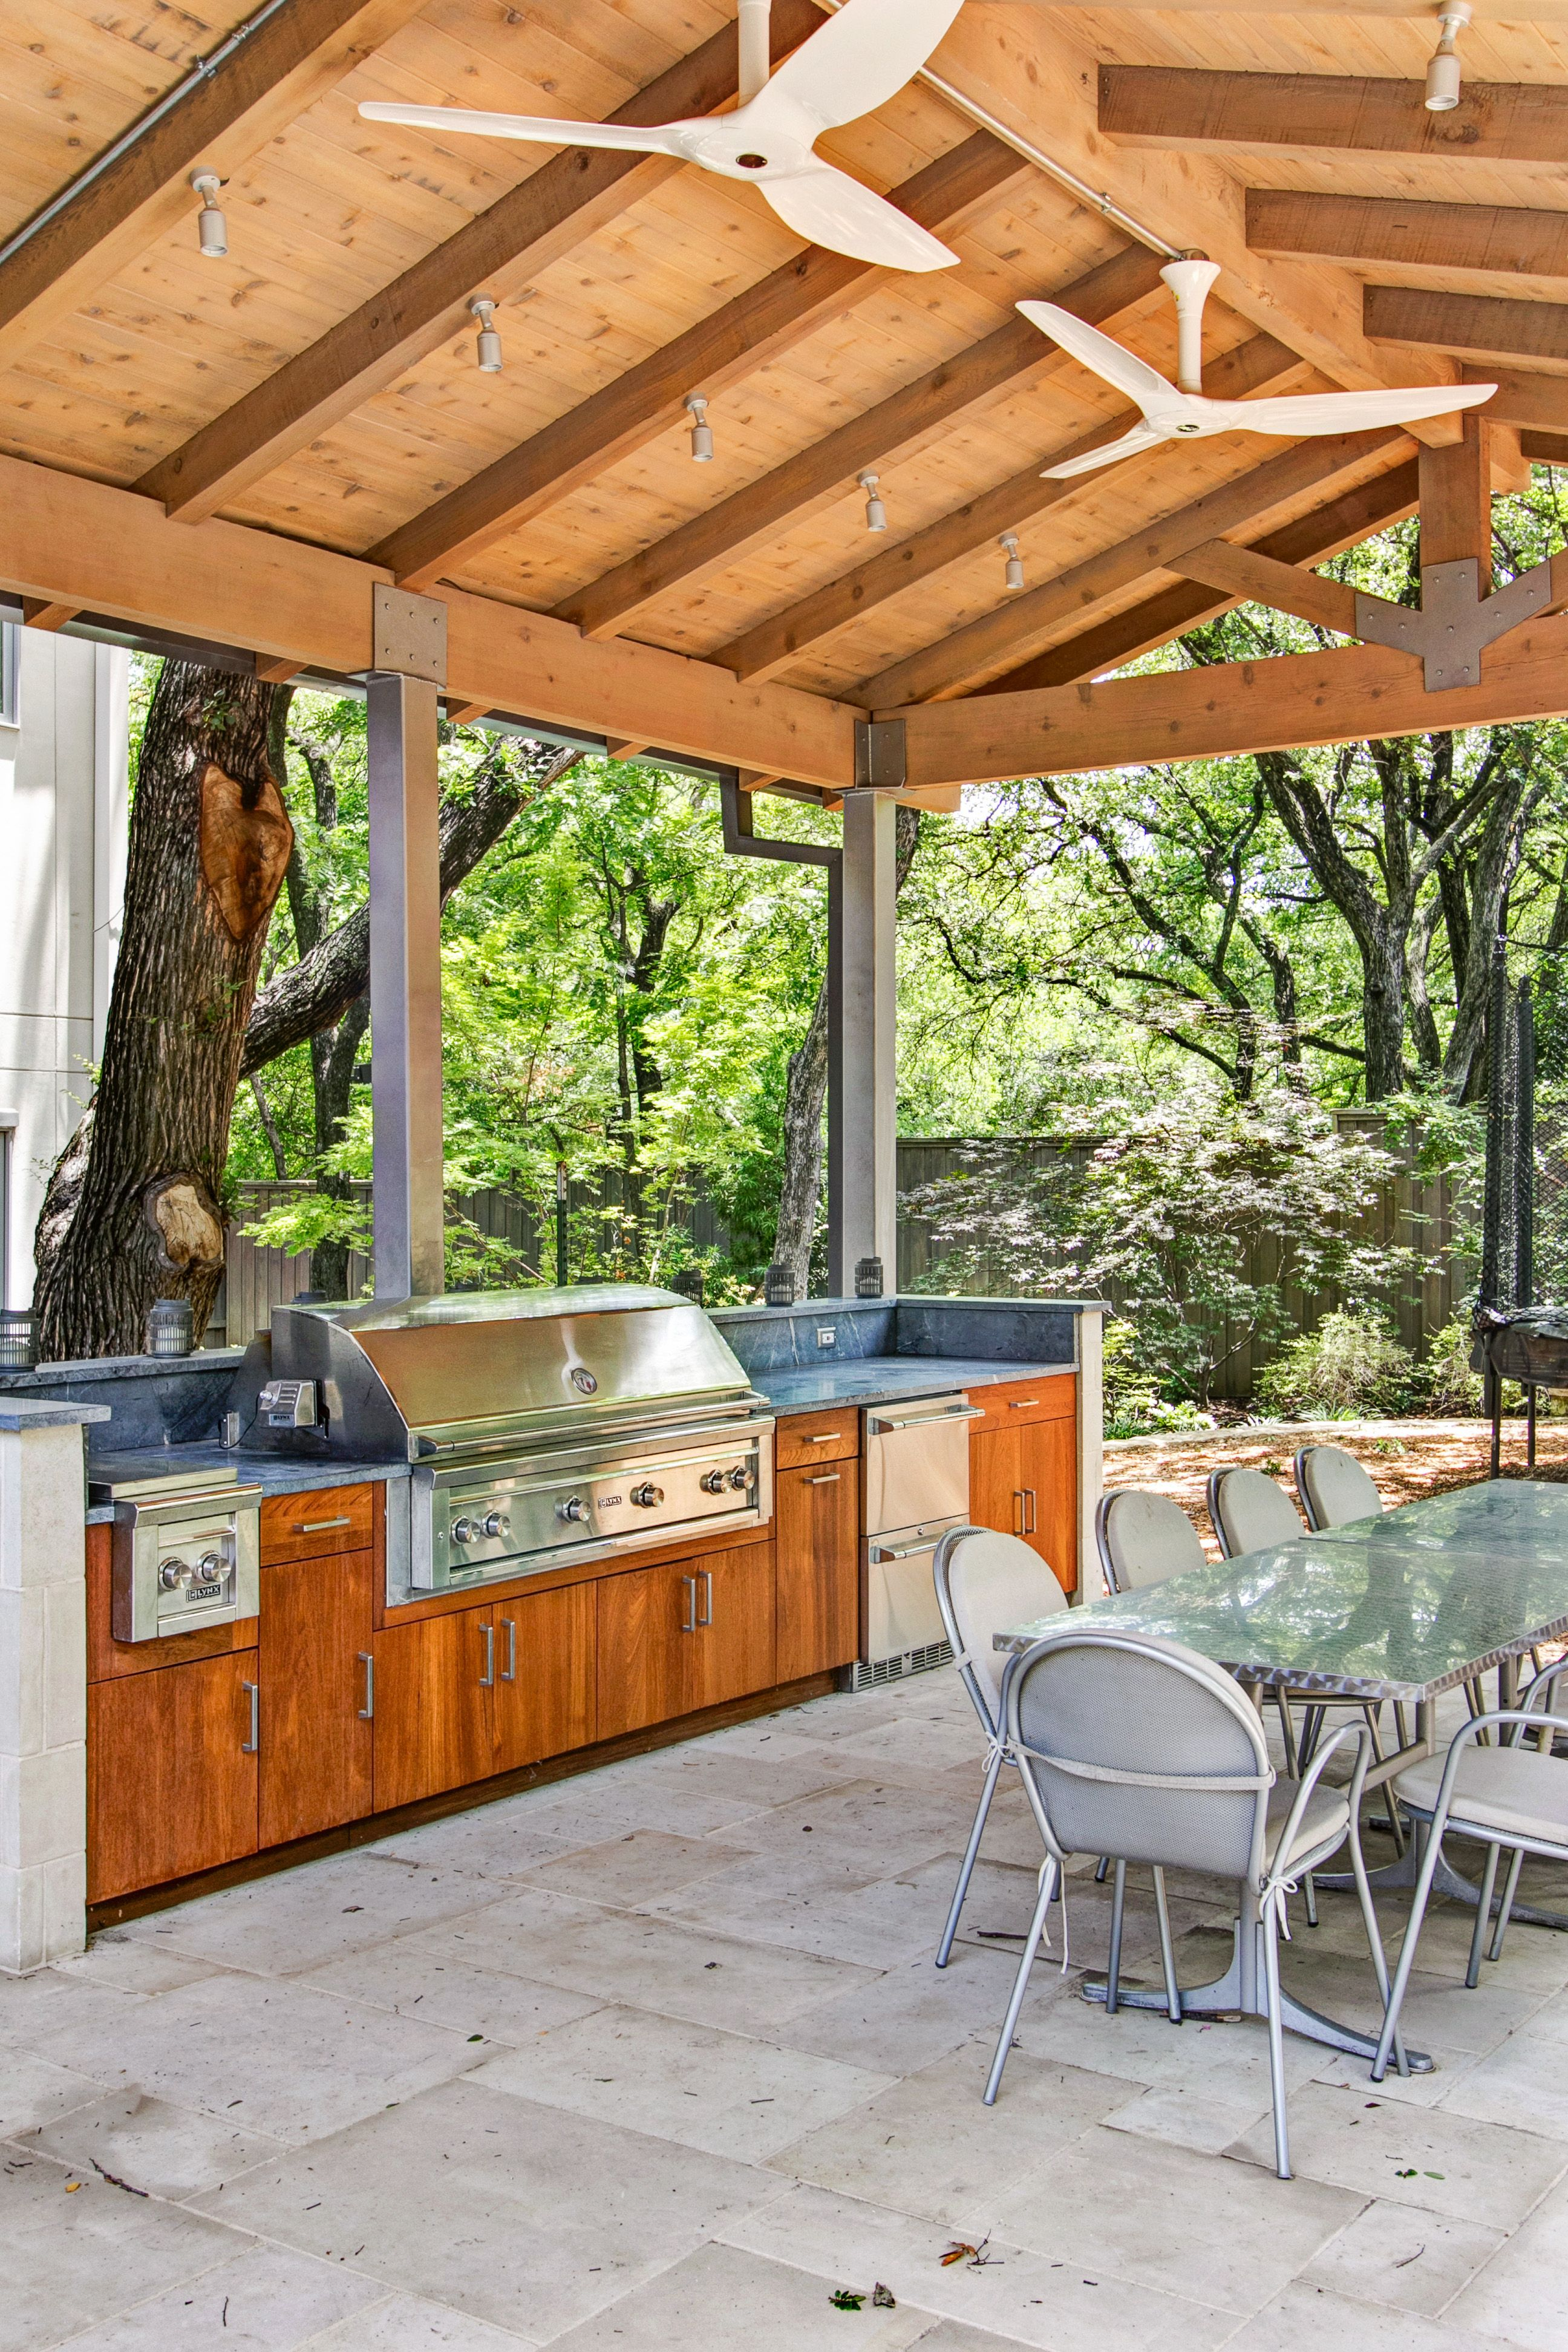 Teak Cabinets With Slab Door Lynx 54 Grill Double Side Burner And Drawer Fridge North Dallas W Outdoor Kitchen Cabinets Outdoor Kitchen Kitchen Design